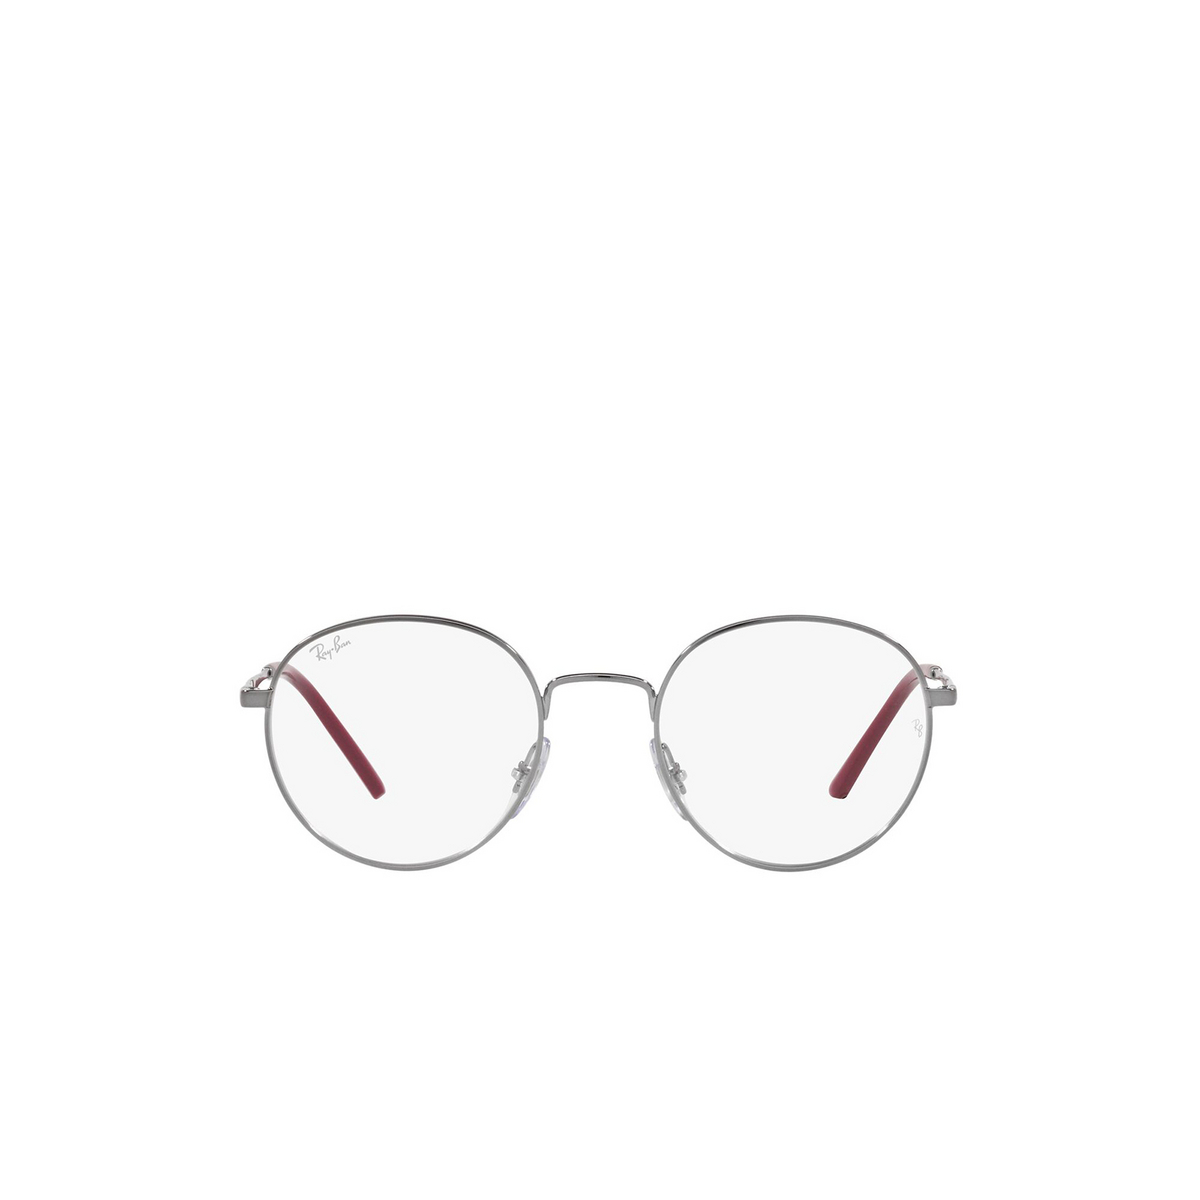 Ray-Ban® Round Eyeglasses: RX3681V color Gunmetal 2502 - front view.